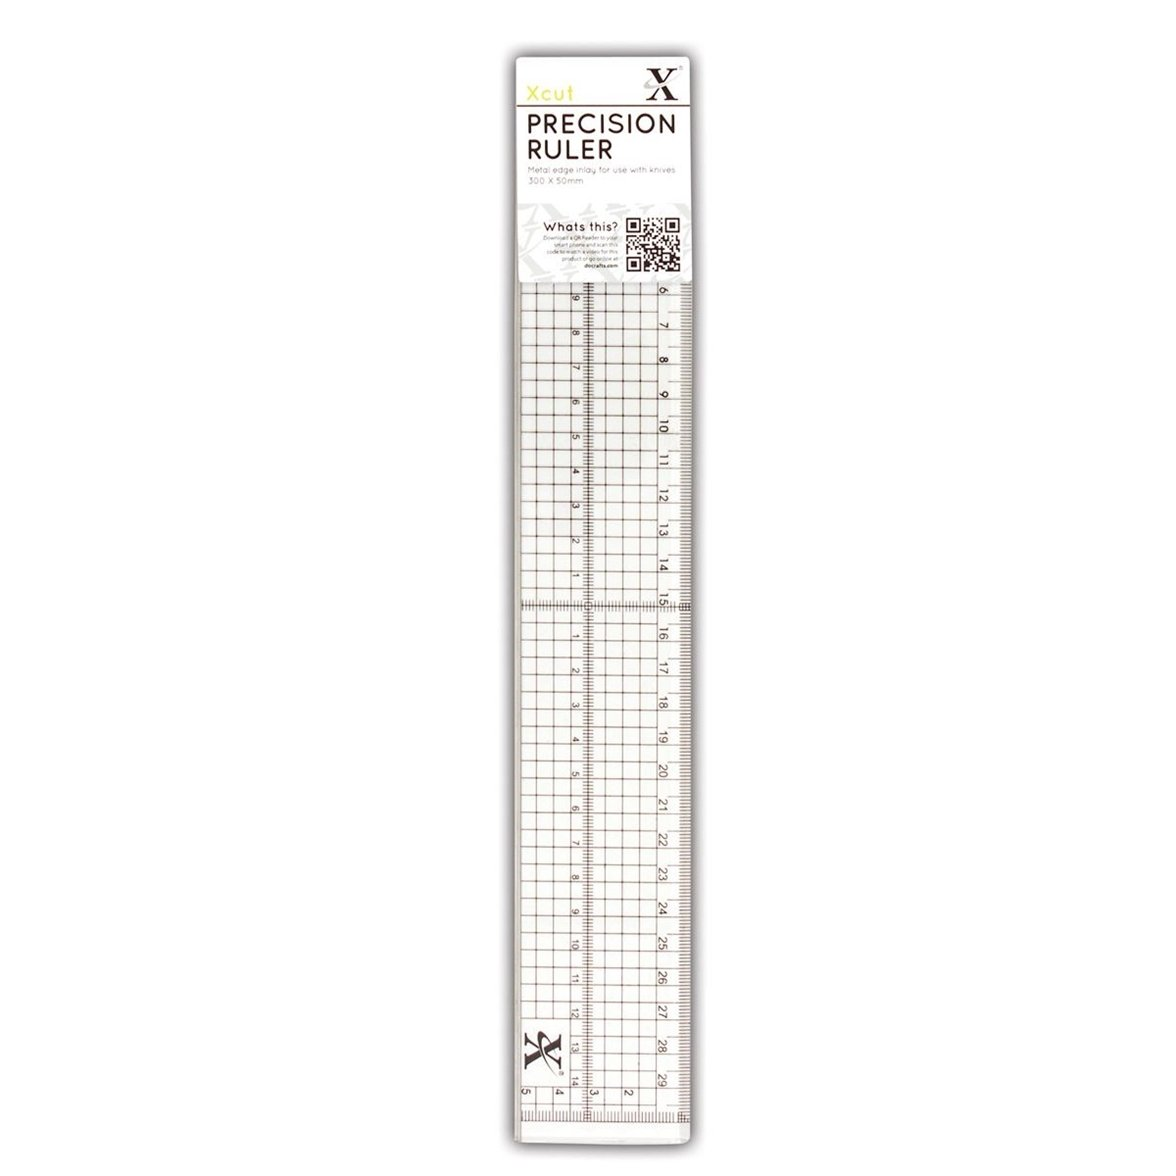 Docrafts 30 cm Precision Ruler with Metal Edge Inlay XCU 255301